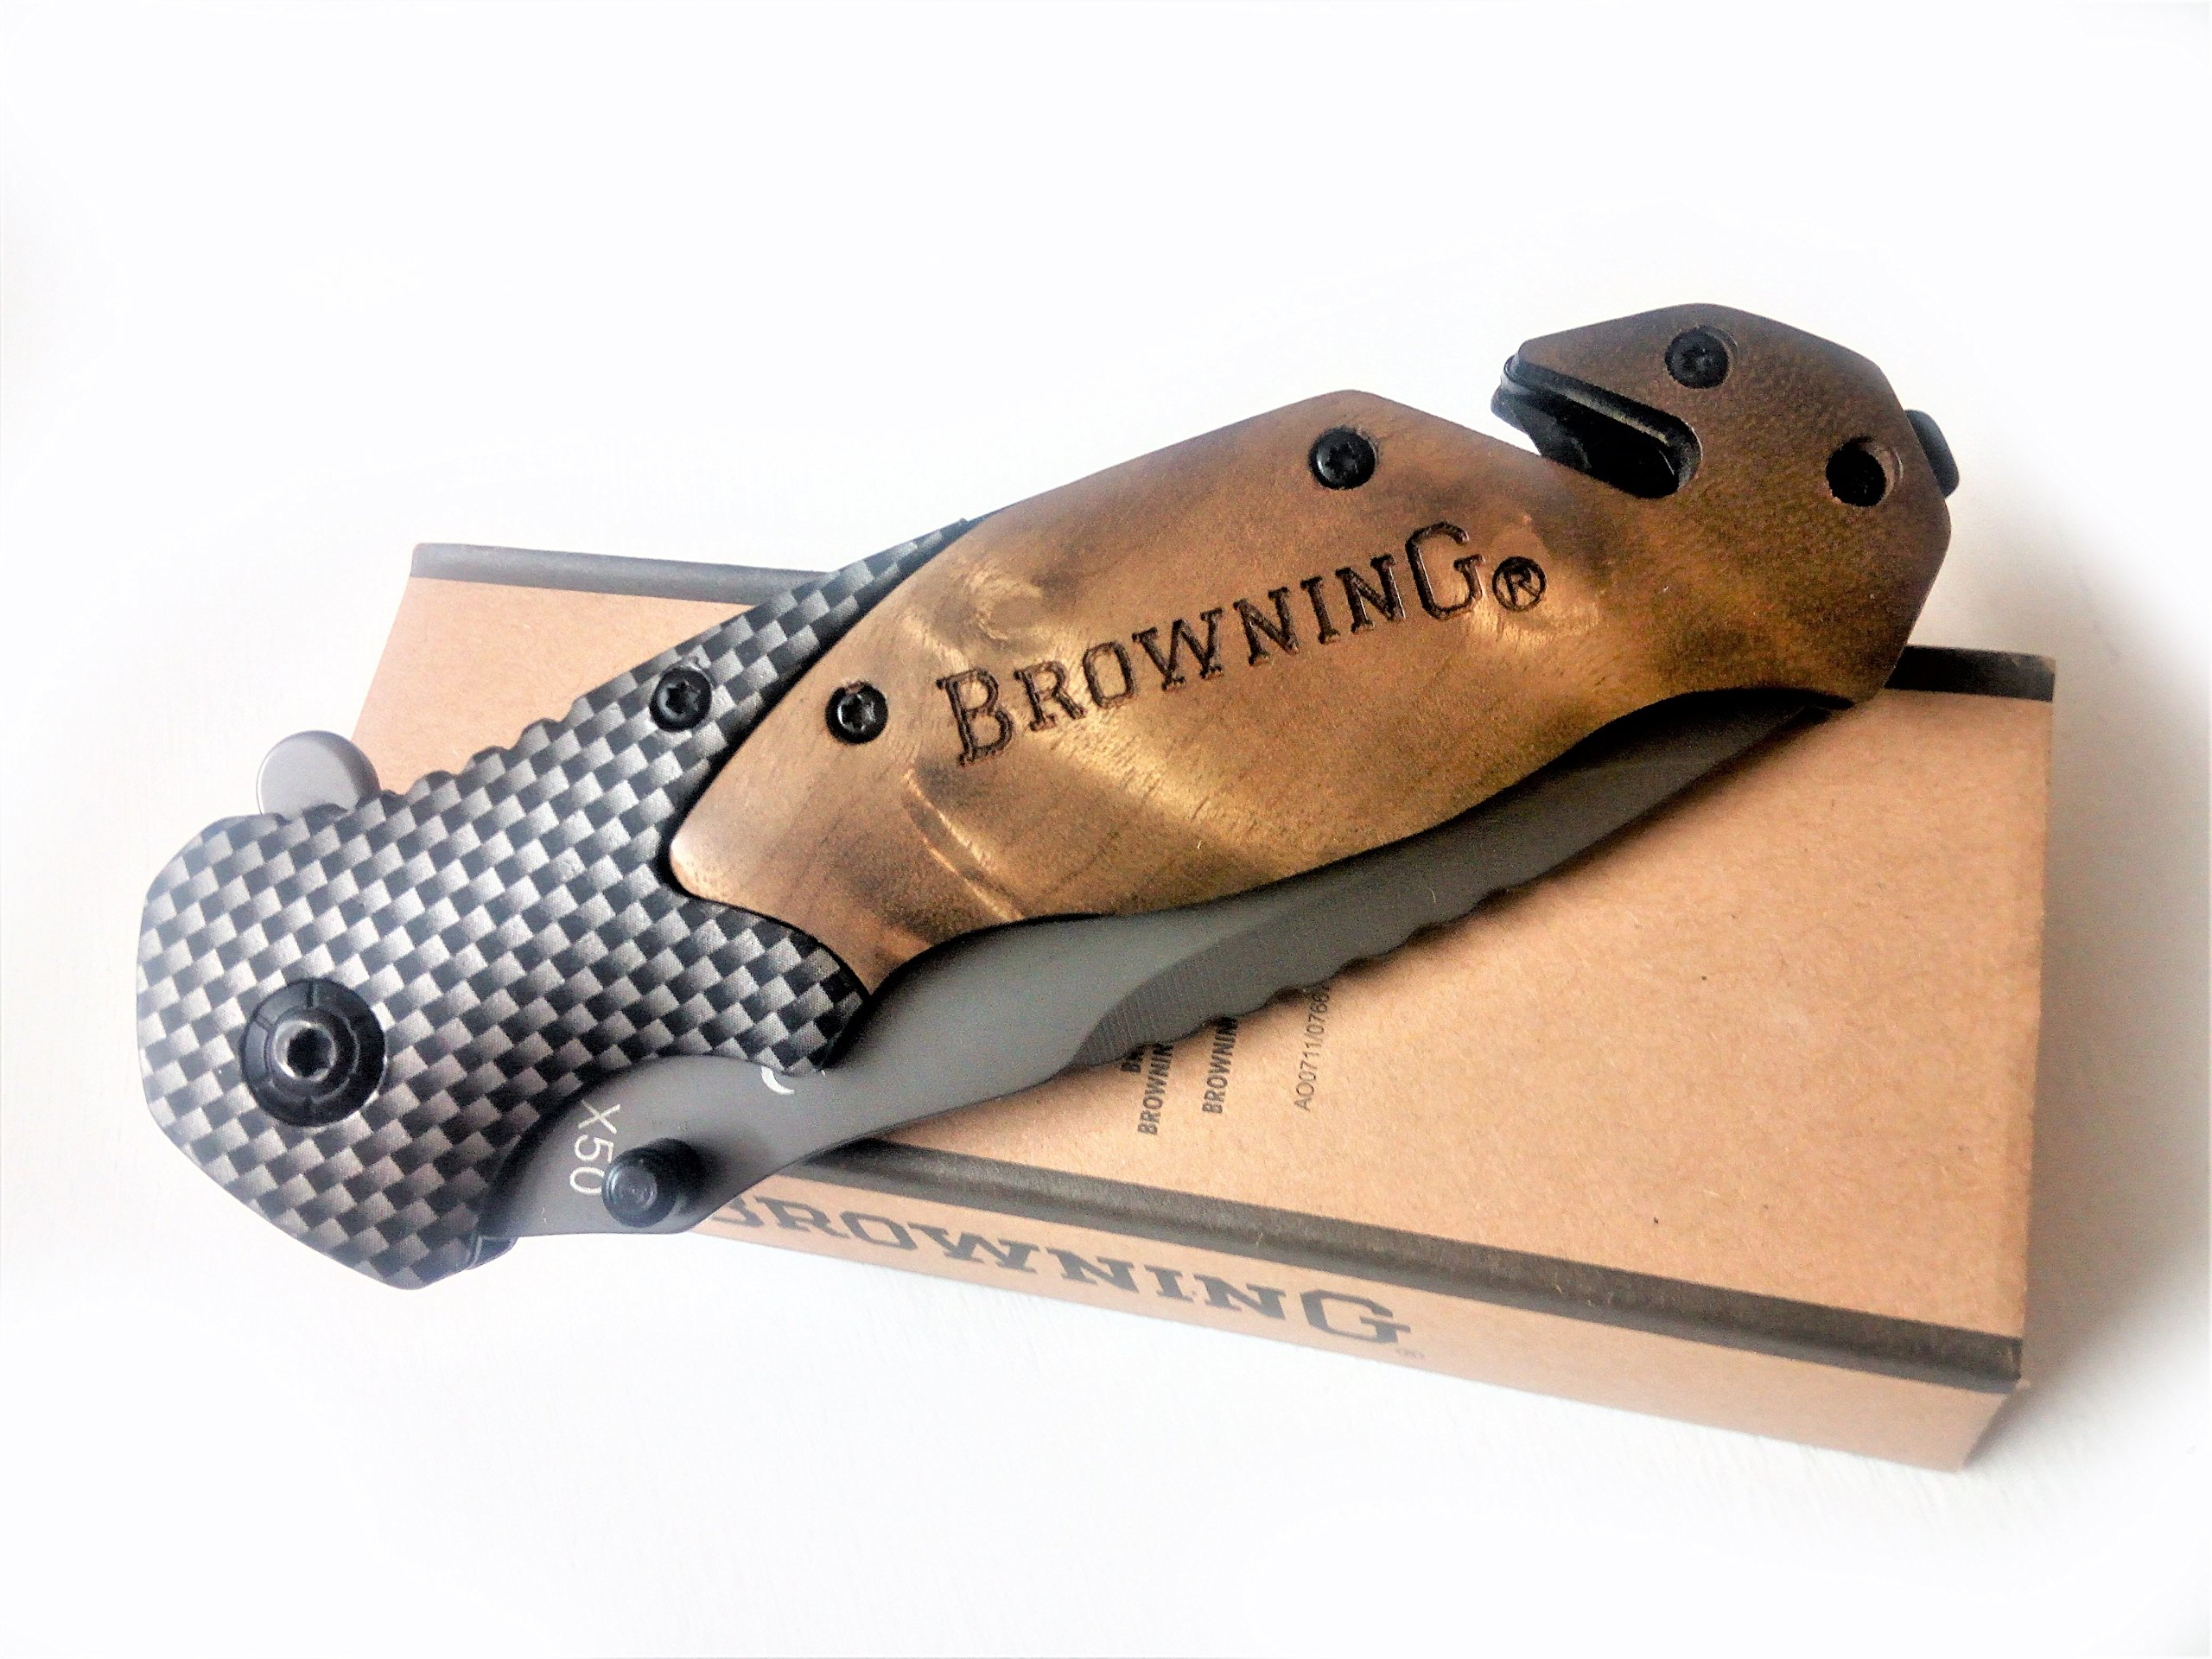 Brrrowning Hunting Folding Knife with Seat Belt Cutter and Slotted Screwdriver for Survival Camping Tactical, Gray Titanium Coating Blade and Wood Handle